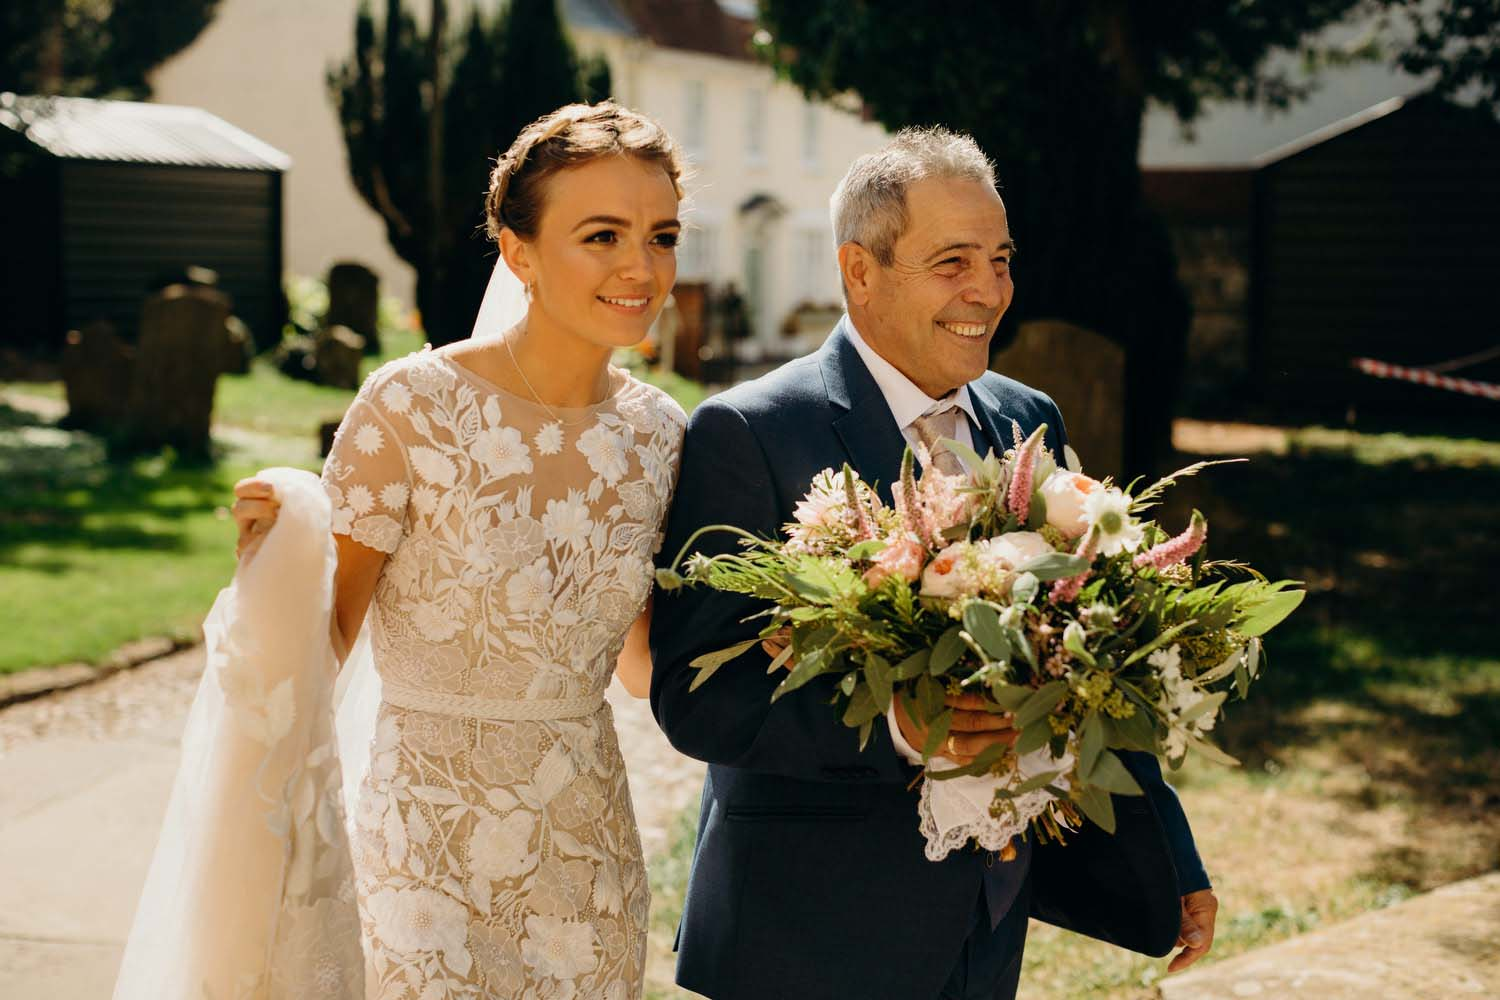 Bride and groom arrive to church